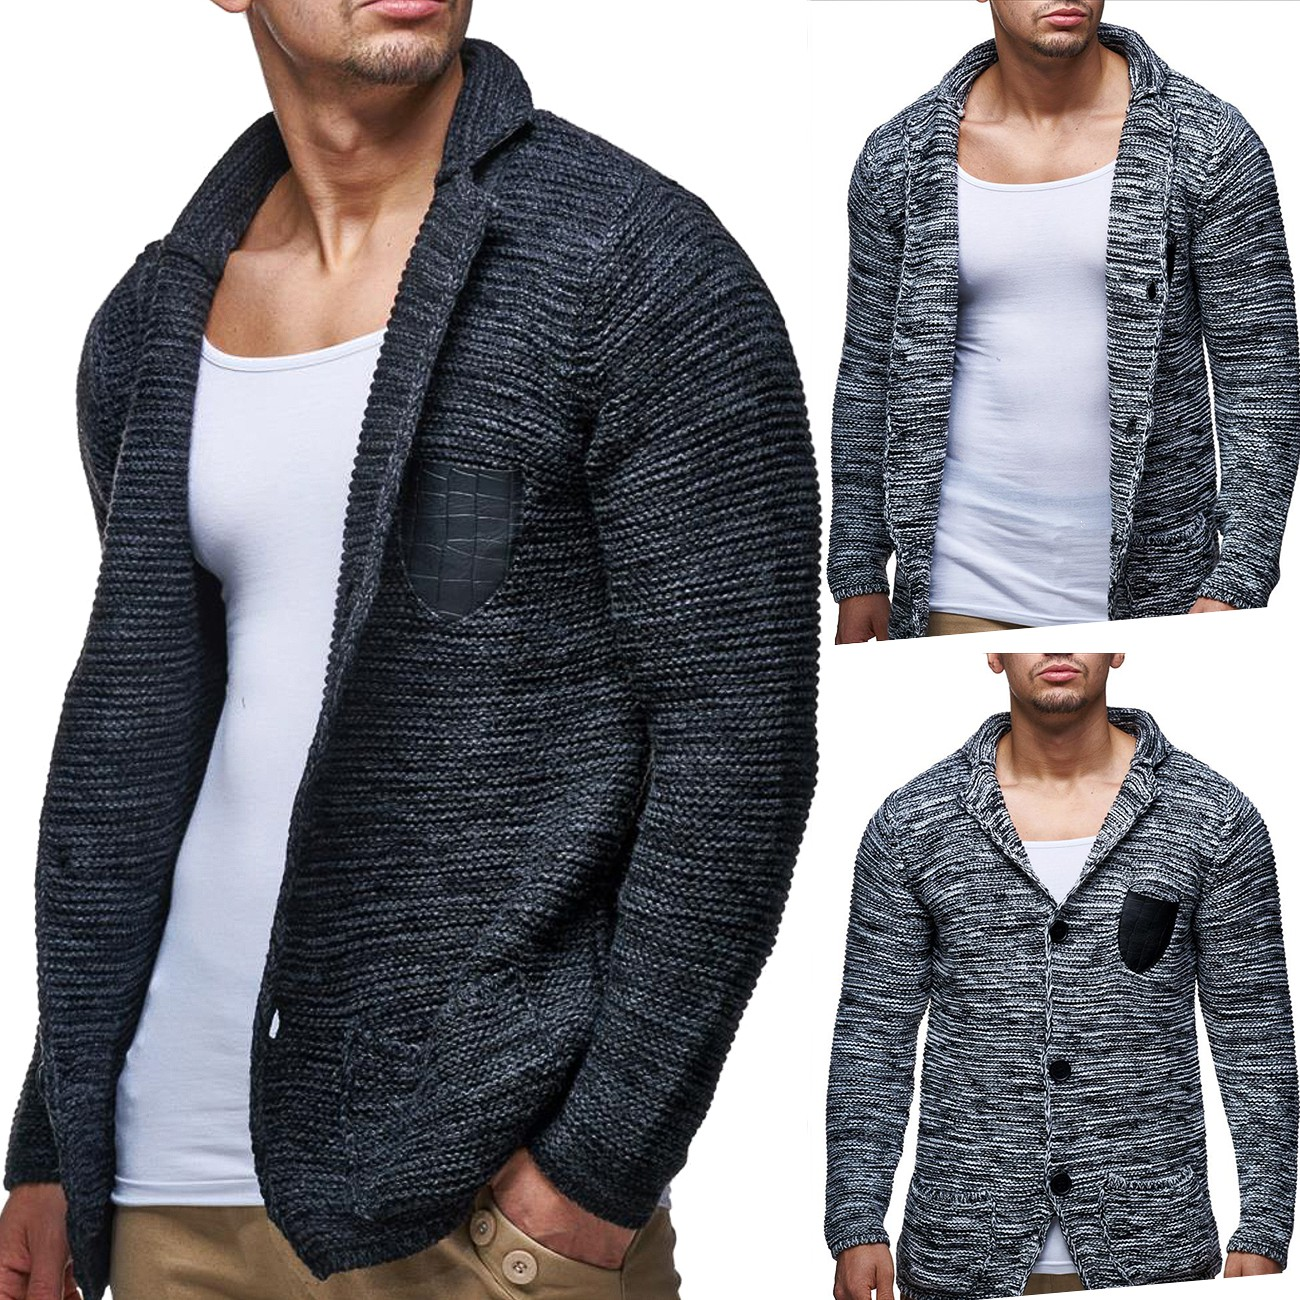 herren strickjacke cardigan grobstrick pullover elegant verschiedene farben ebay. Black Bedroom Furniture Sets. Home Design Ideas